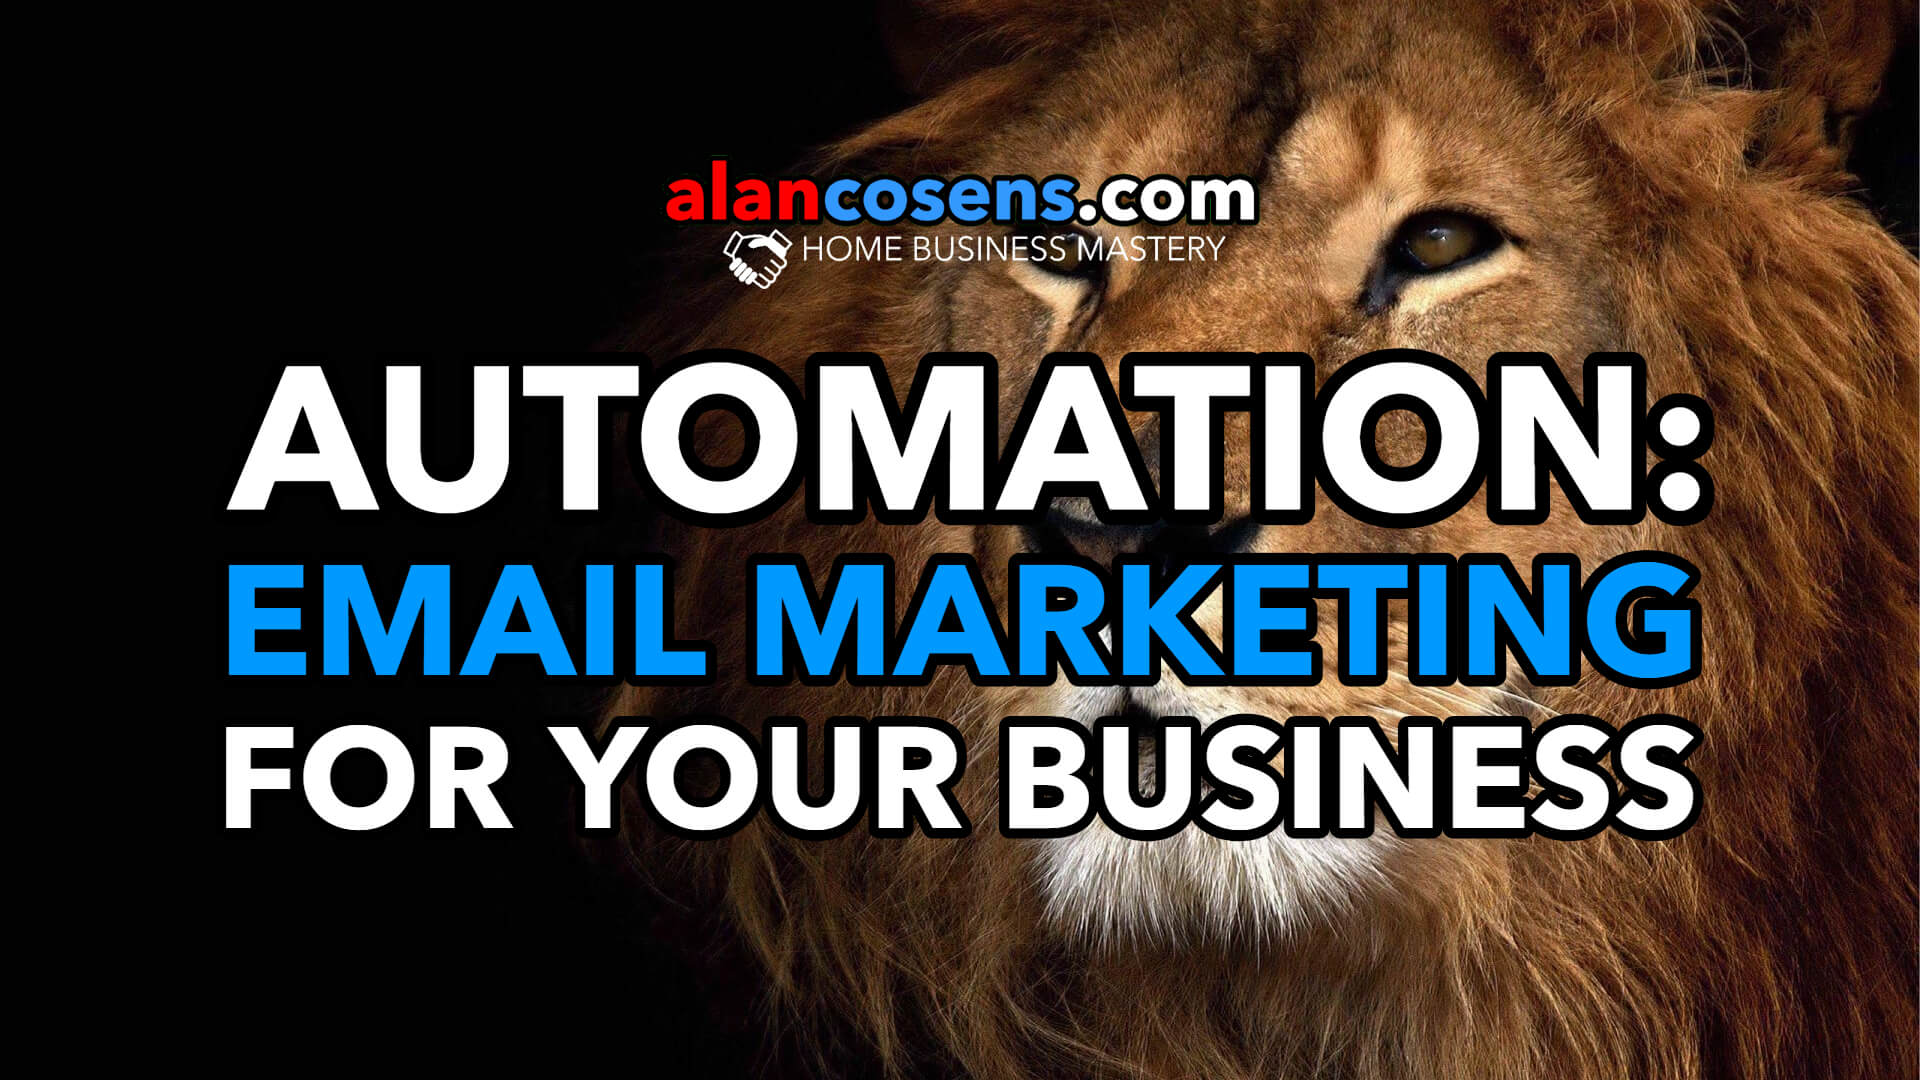 Getting Started With Email Marketing and Automated Follow-Up